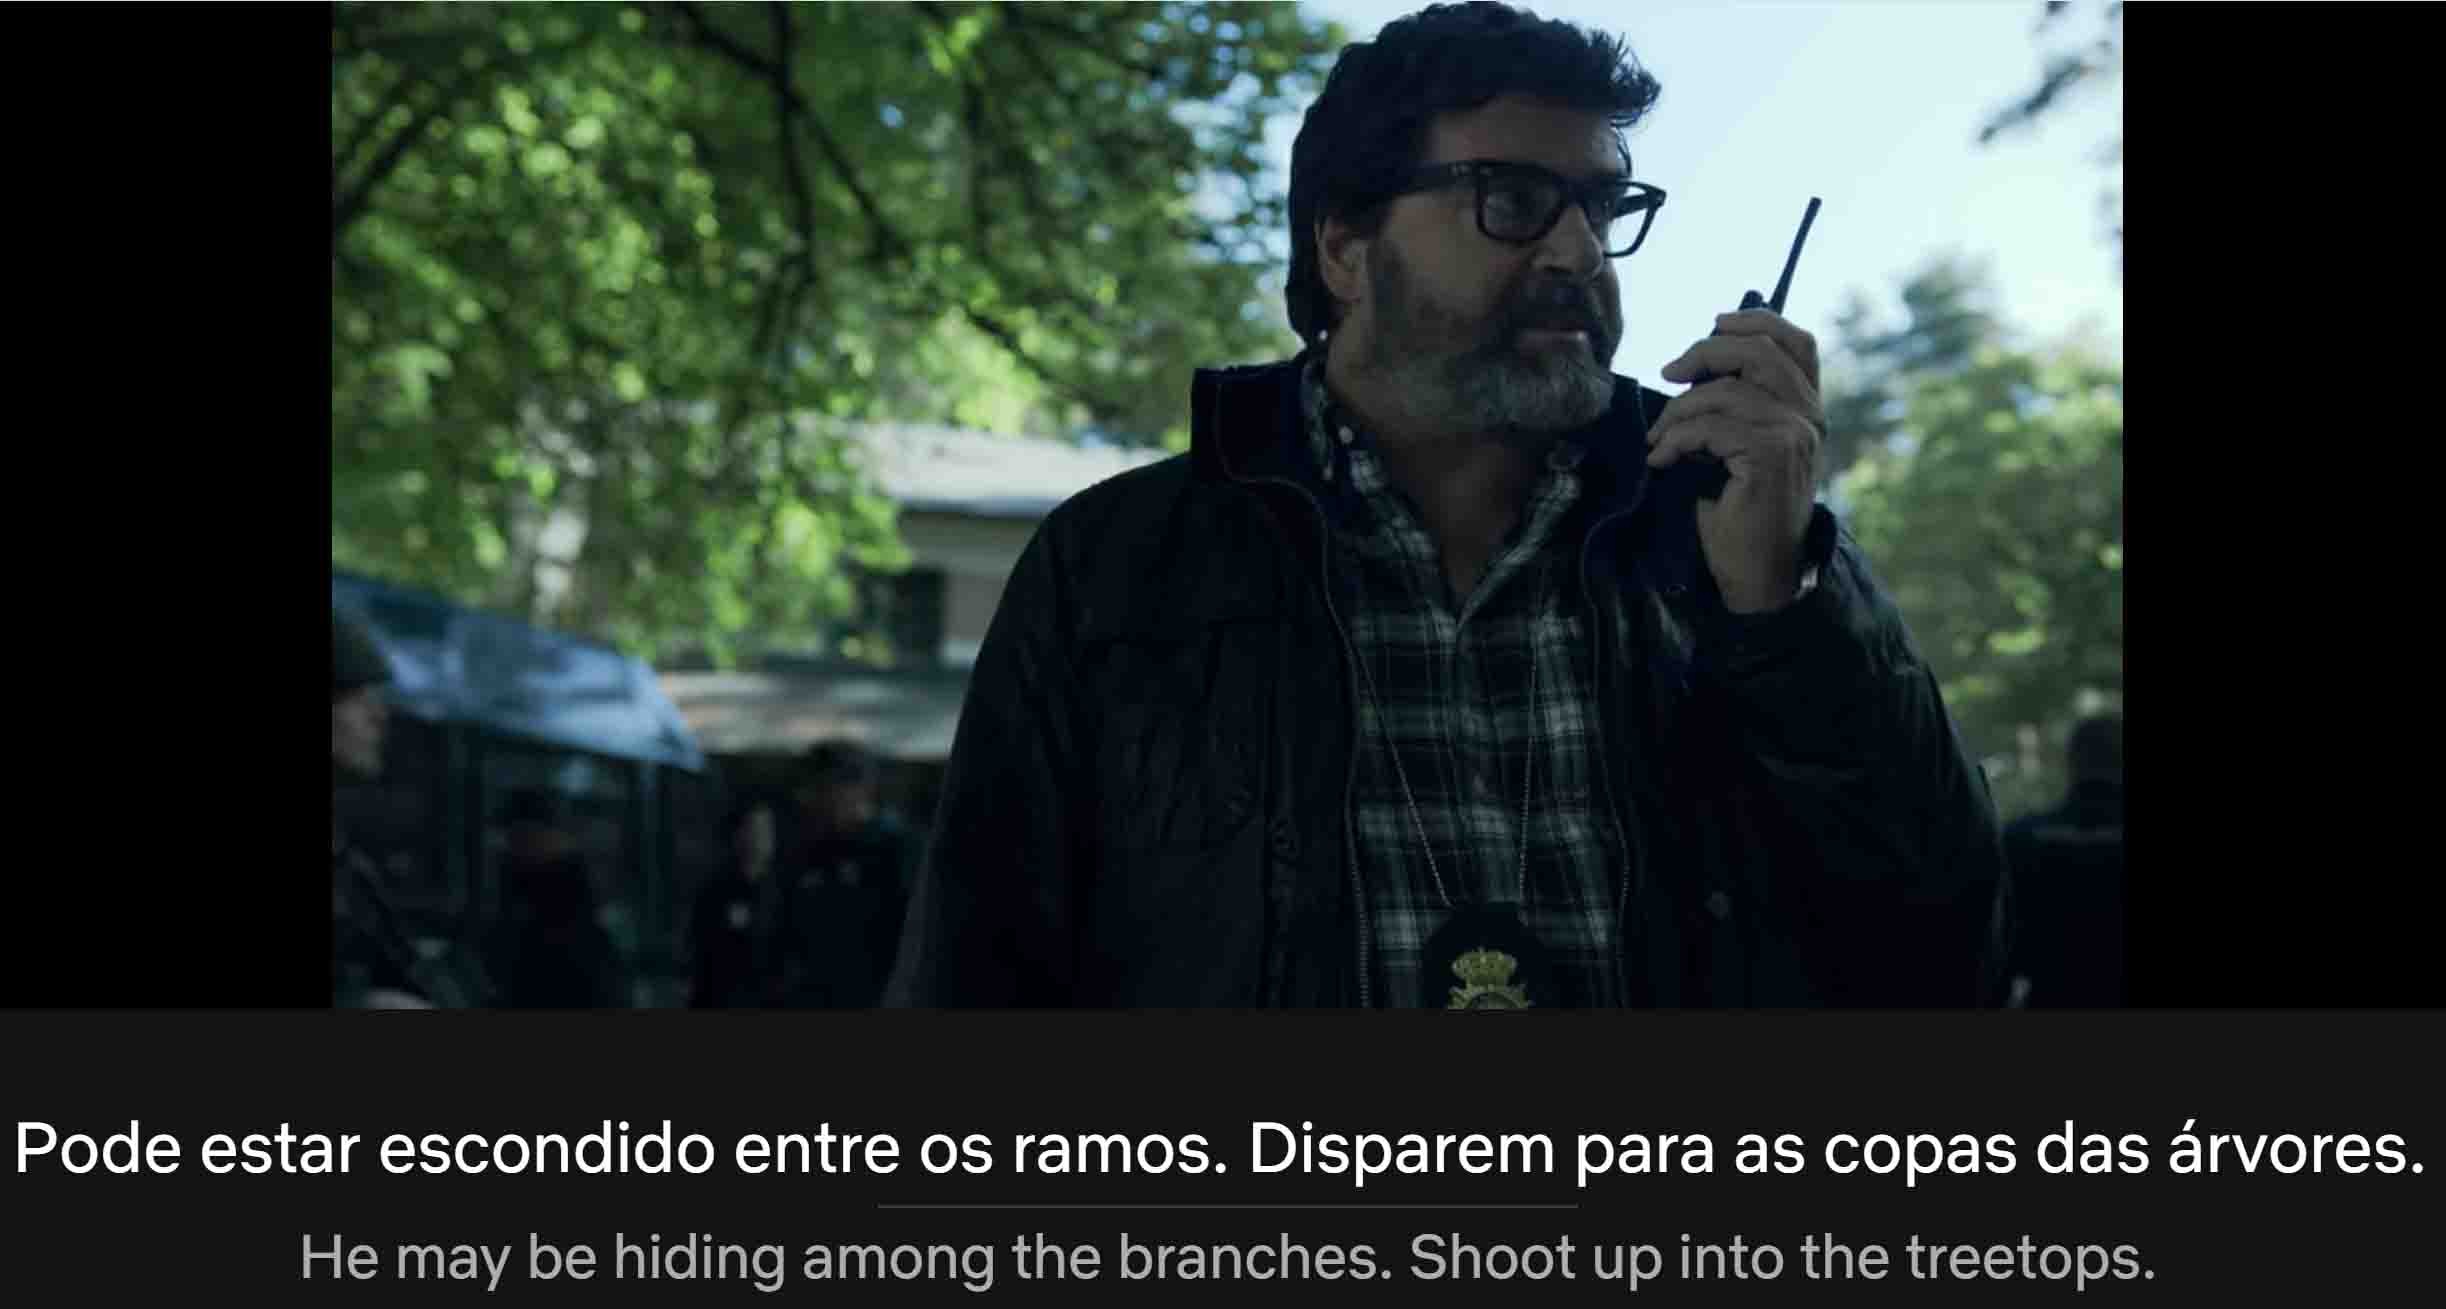 Casa de Papel with Brazilian Portuguese and English subtitles